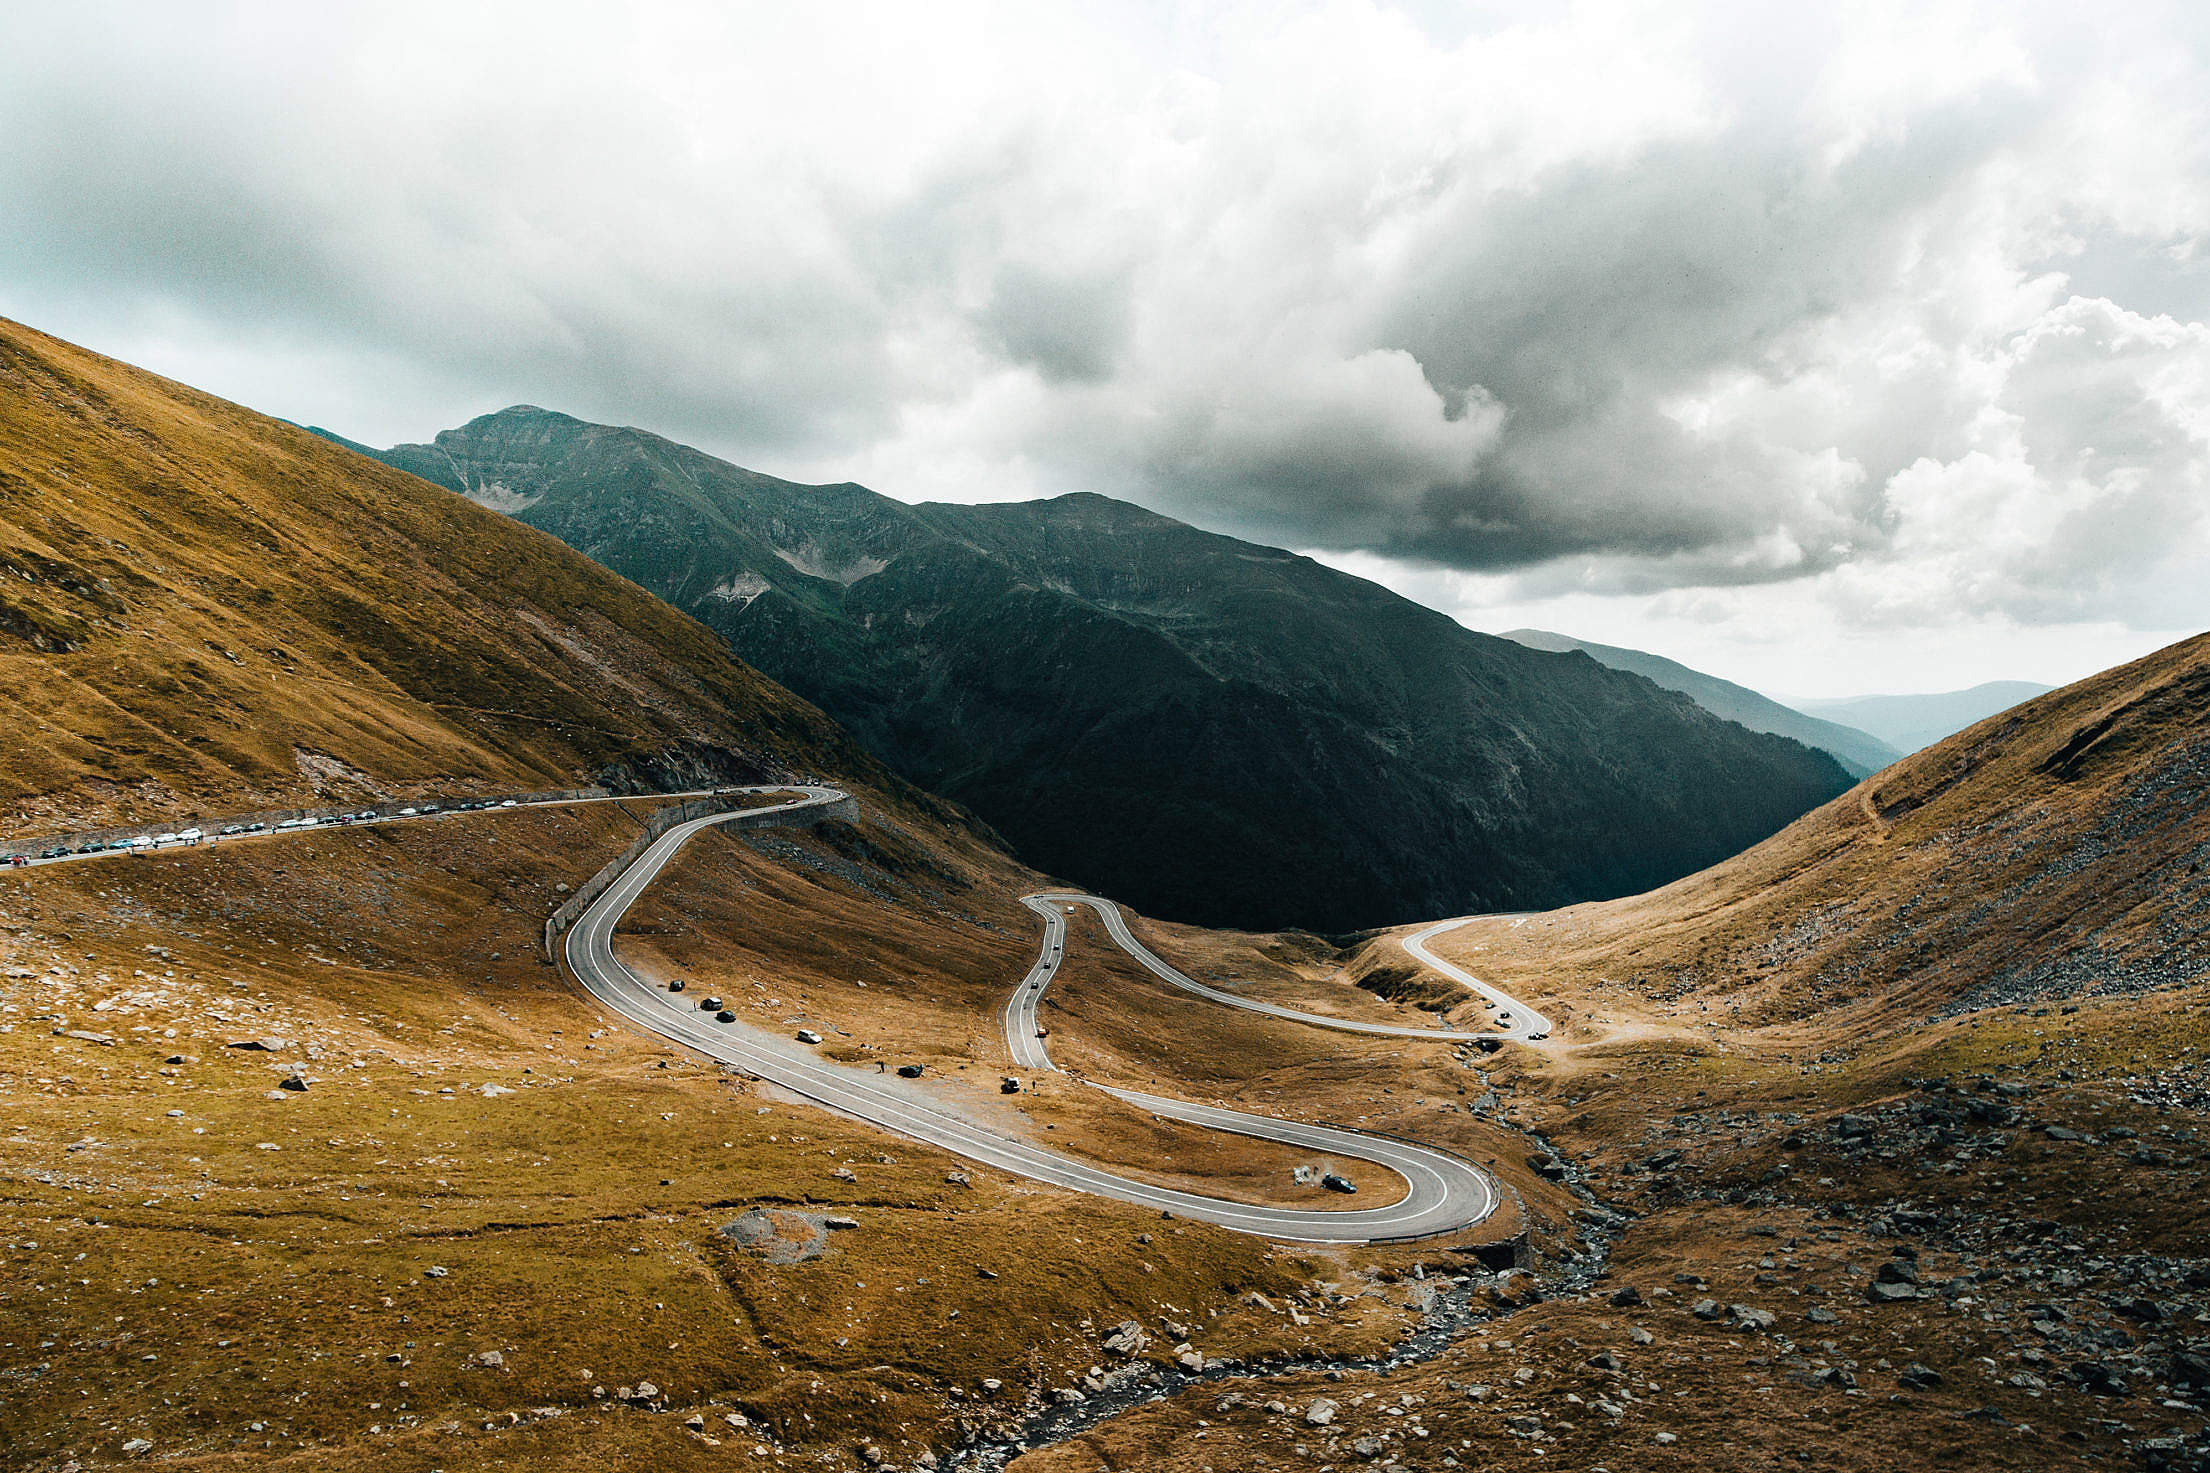 Download Transfagarasan Road Valley Between the Mountains Free Stock Photo